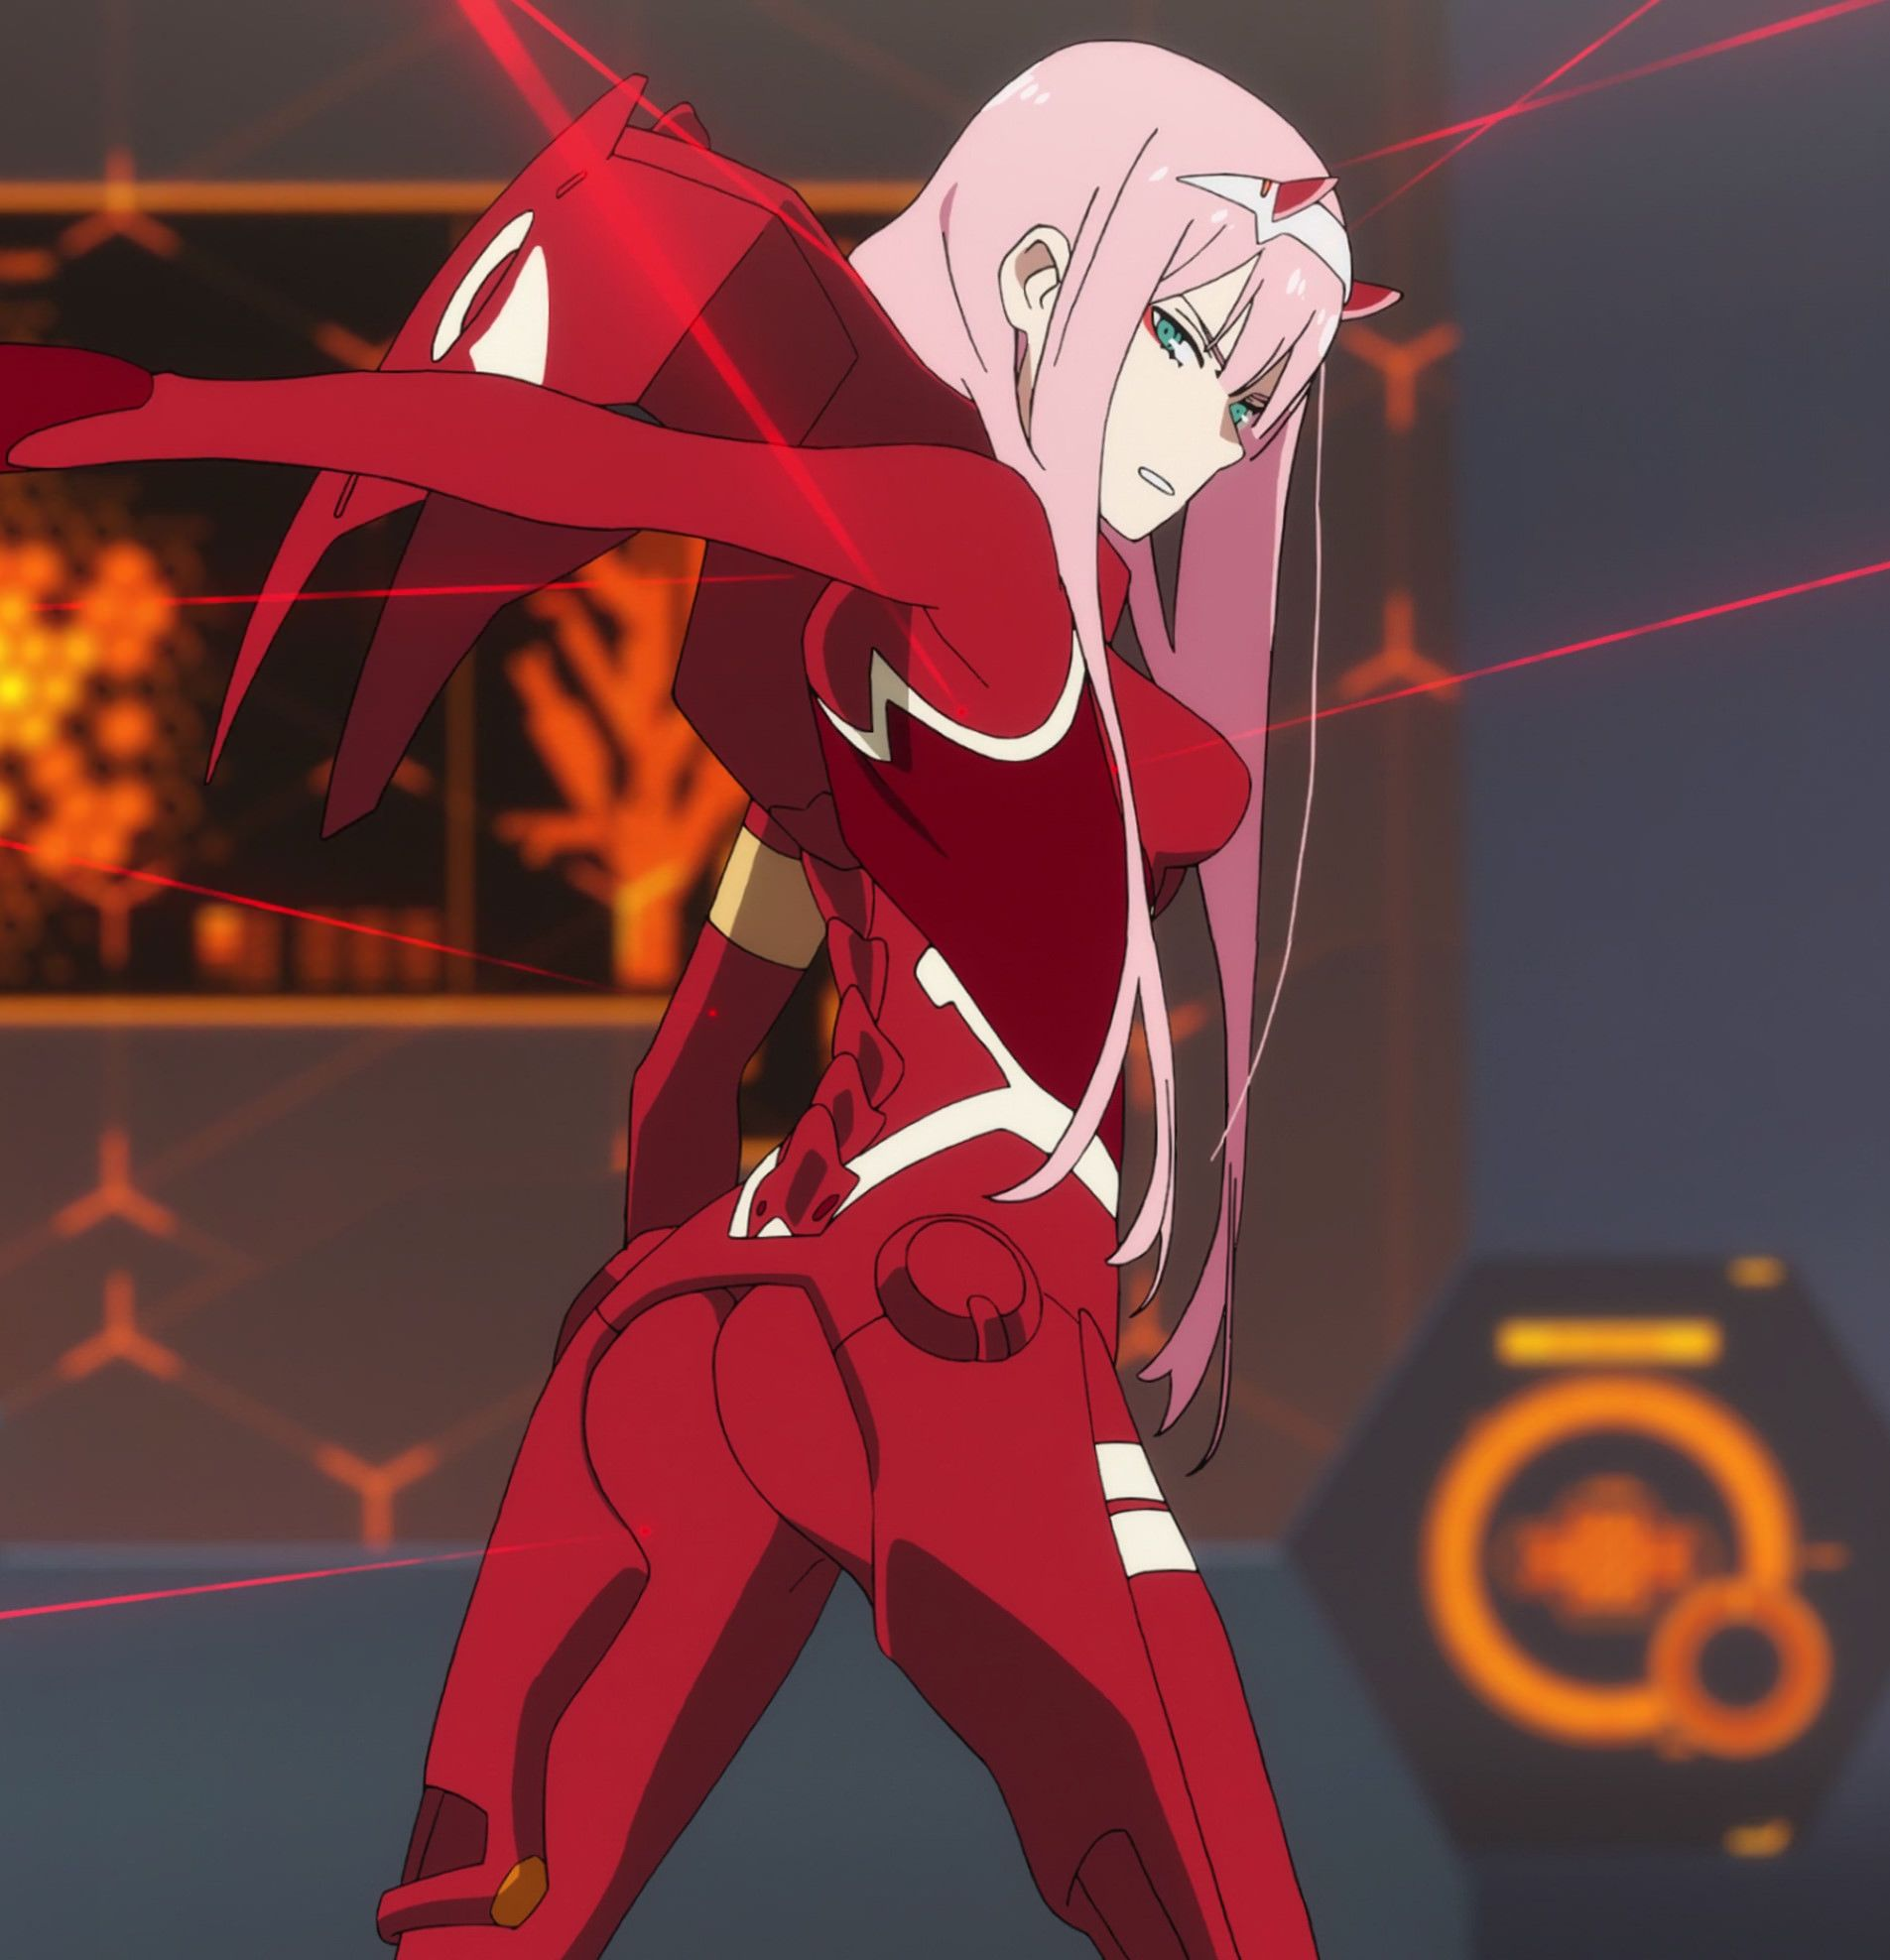 Zero Zero Two 002 Bodysuit Darling In The Franxx Darling In The